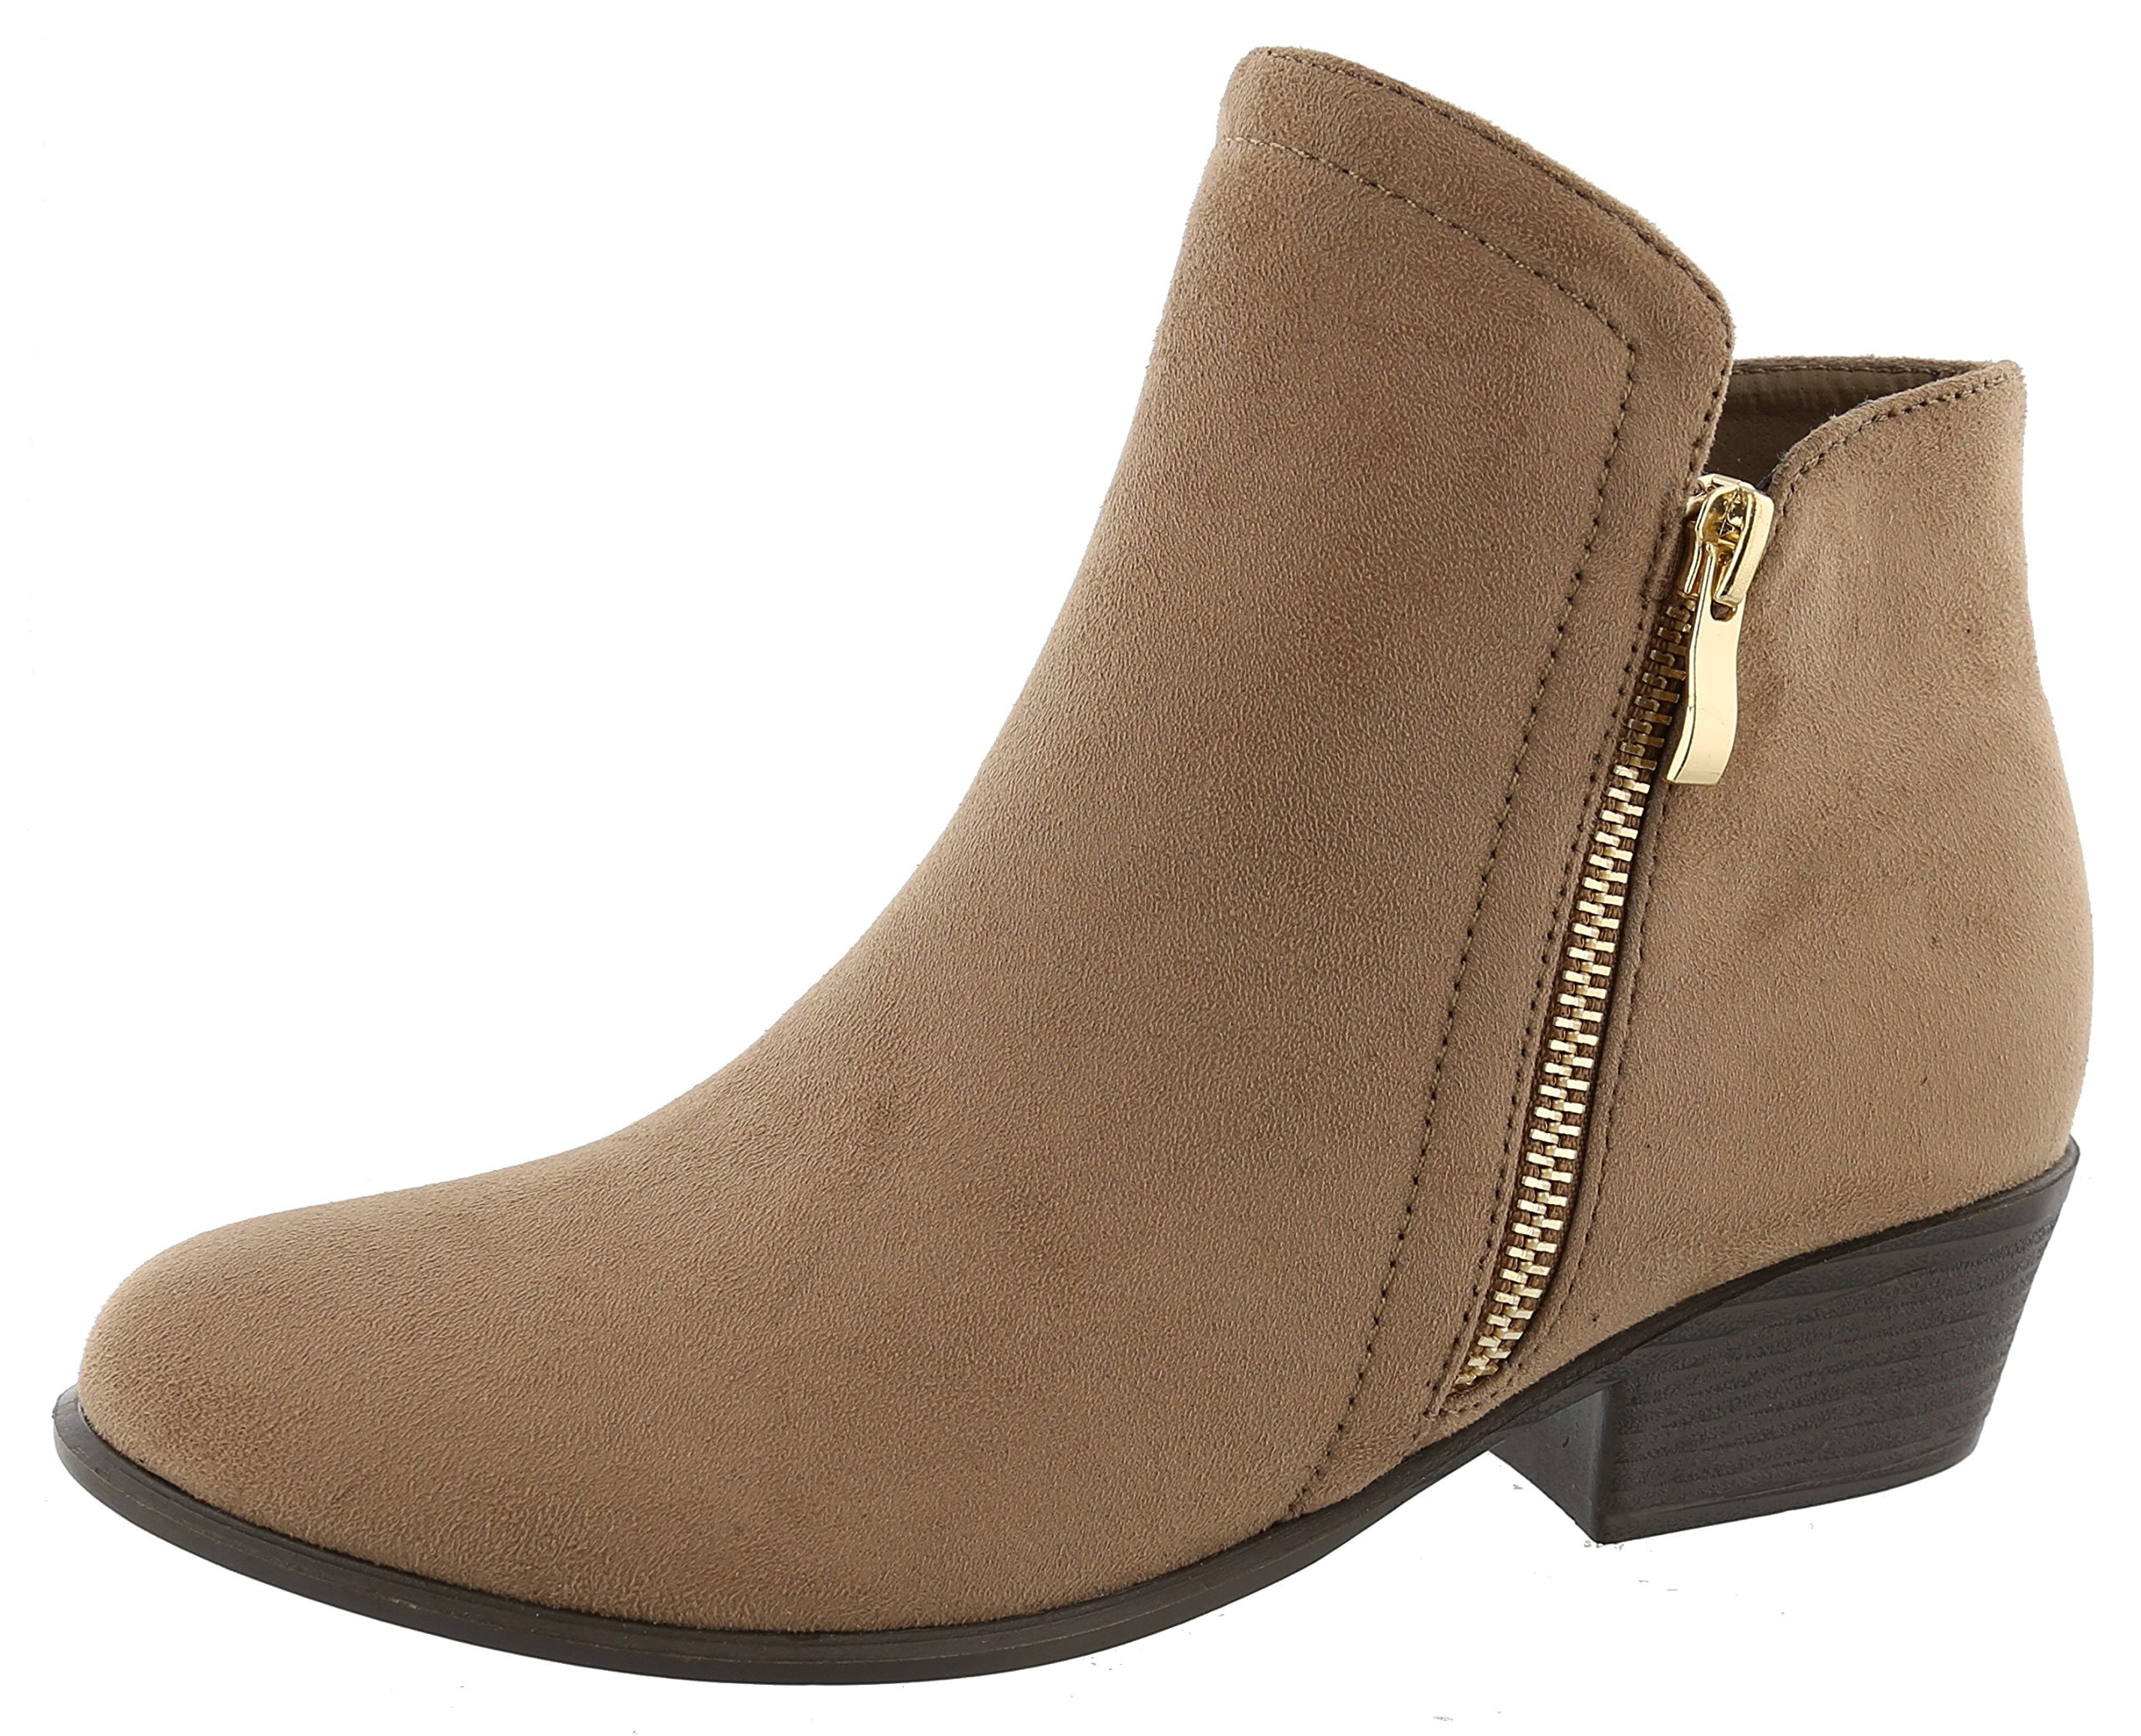 Top Moda Women's Closed Round Toe Zipper Chunky Stacked Block Heel Ankle Bootie (8.5 B(M) US, Taupe)